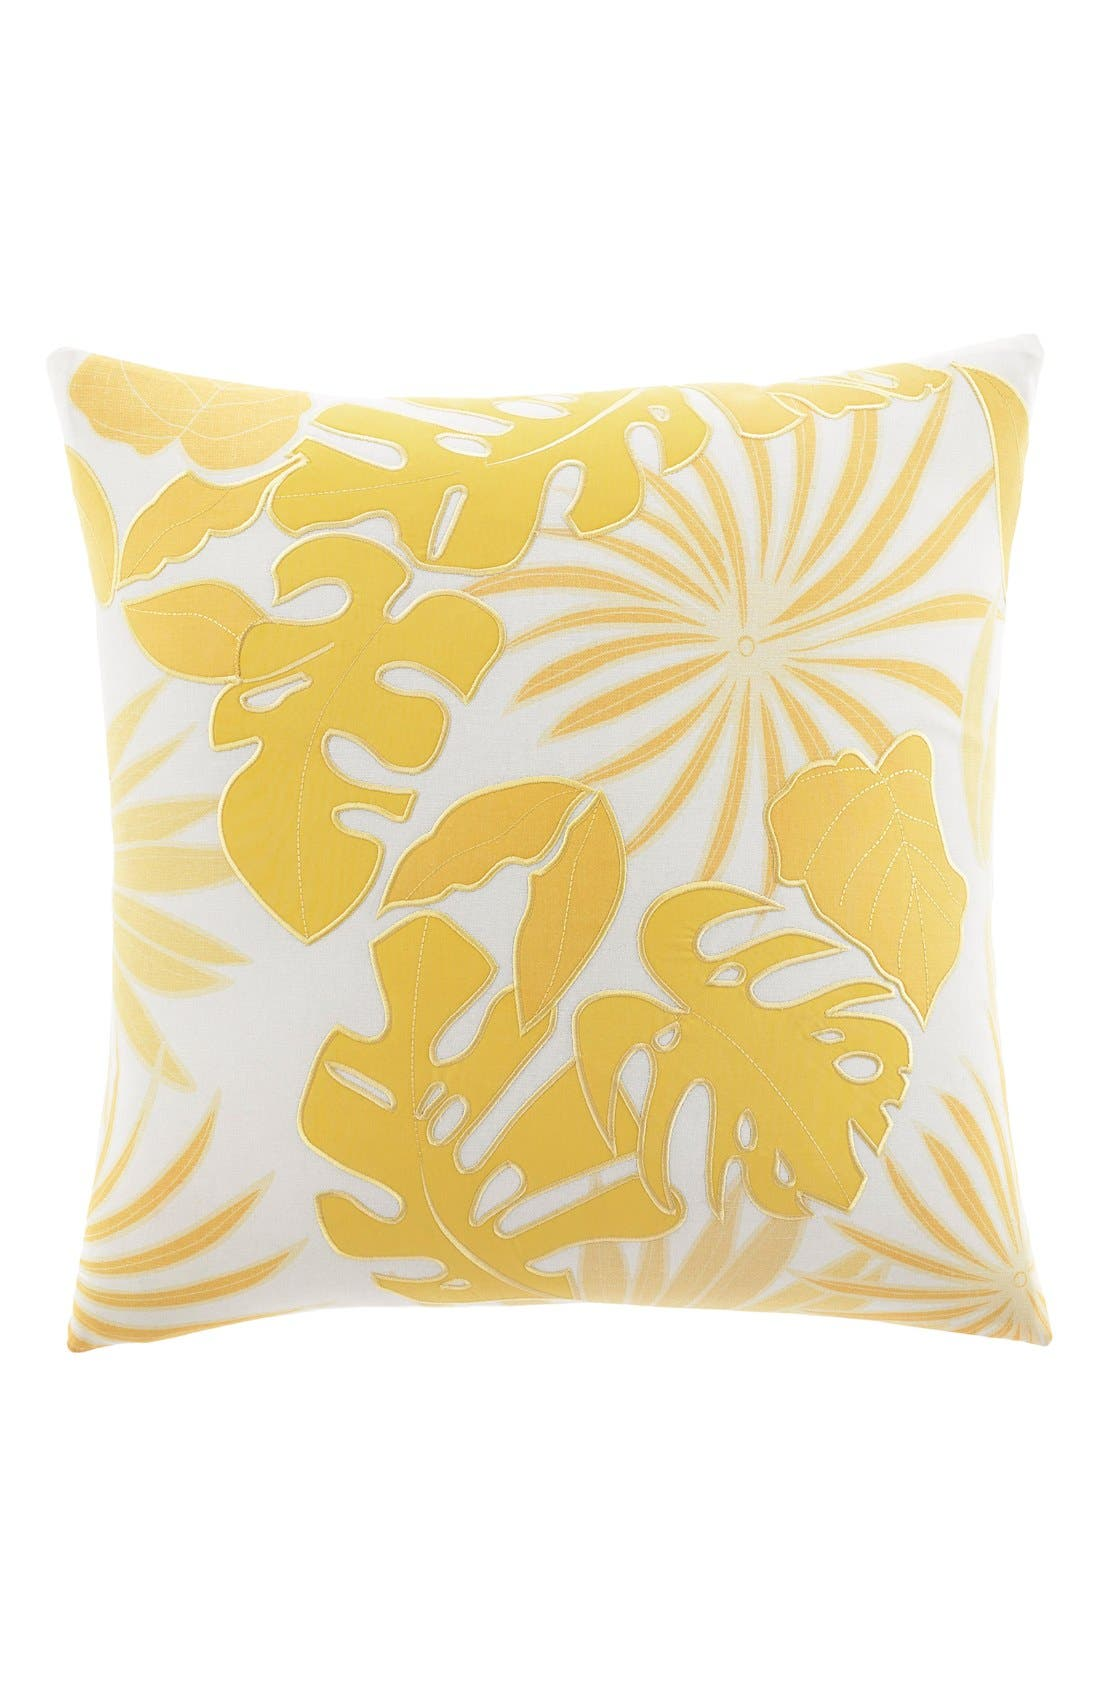 'Antique Palm' Accent Pillow,                             Main thumbnail 1, color,                             Sunglow Yellow